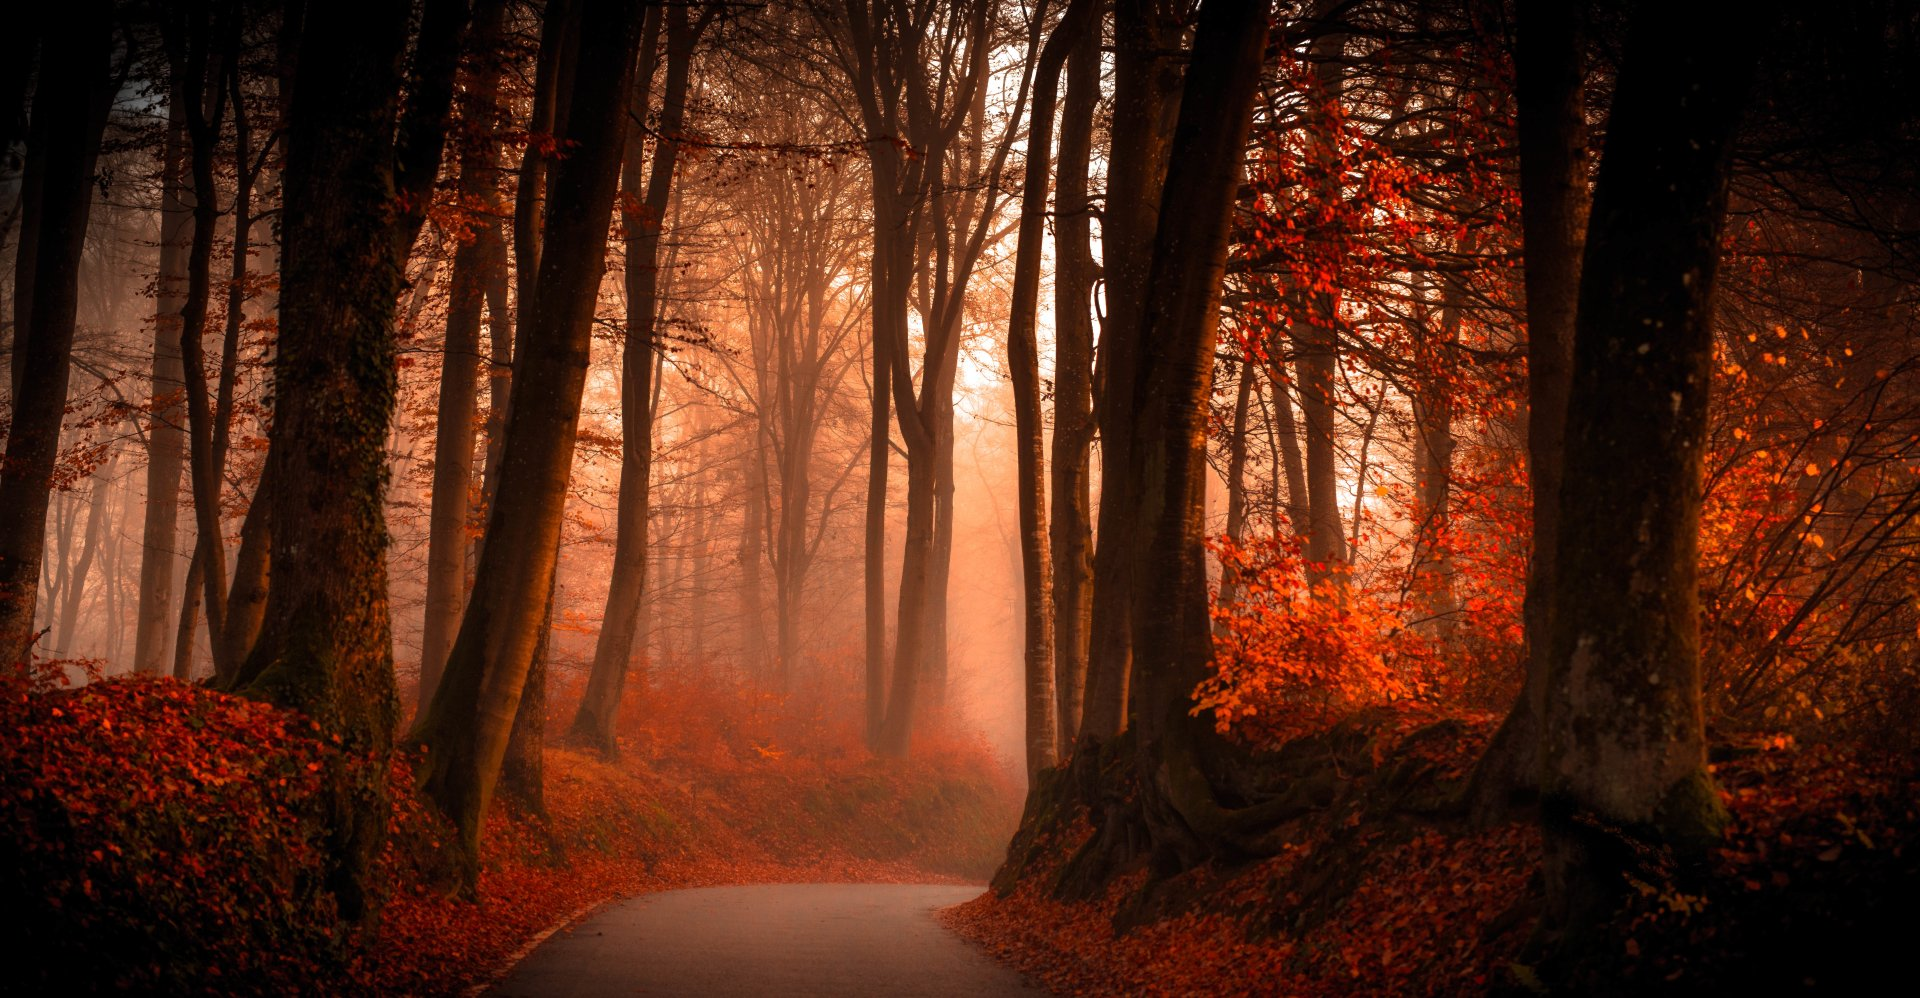 Man Made - Road  Earth Nature Forest Tree Red Foliage Fall Fog Wallpaper